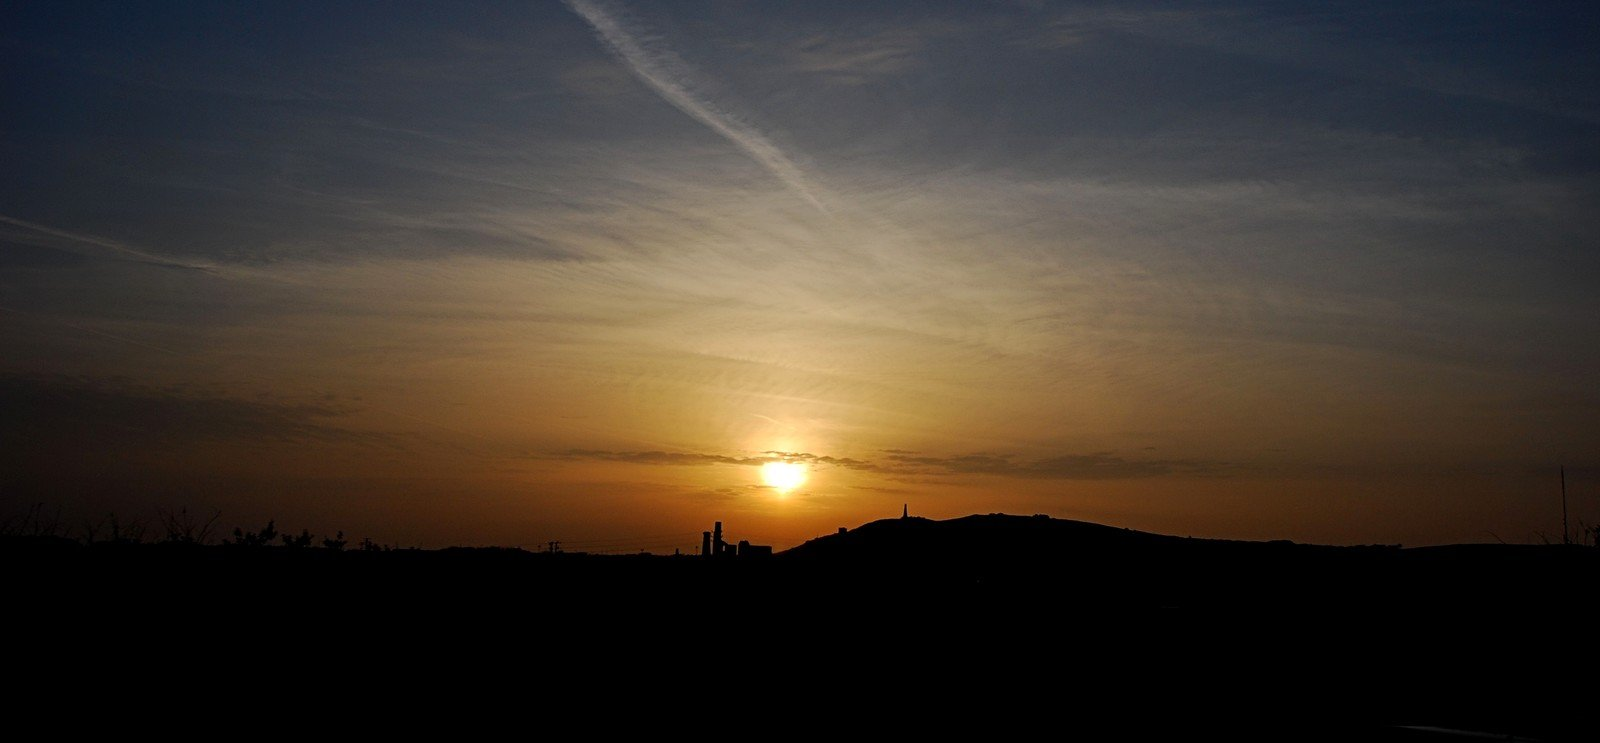 Sunrise over Carn Brea, Camborne